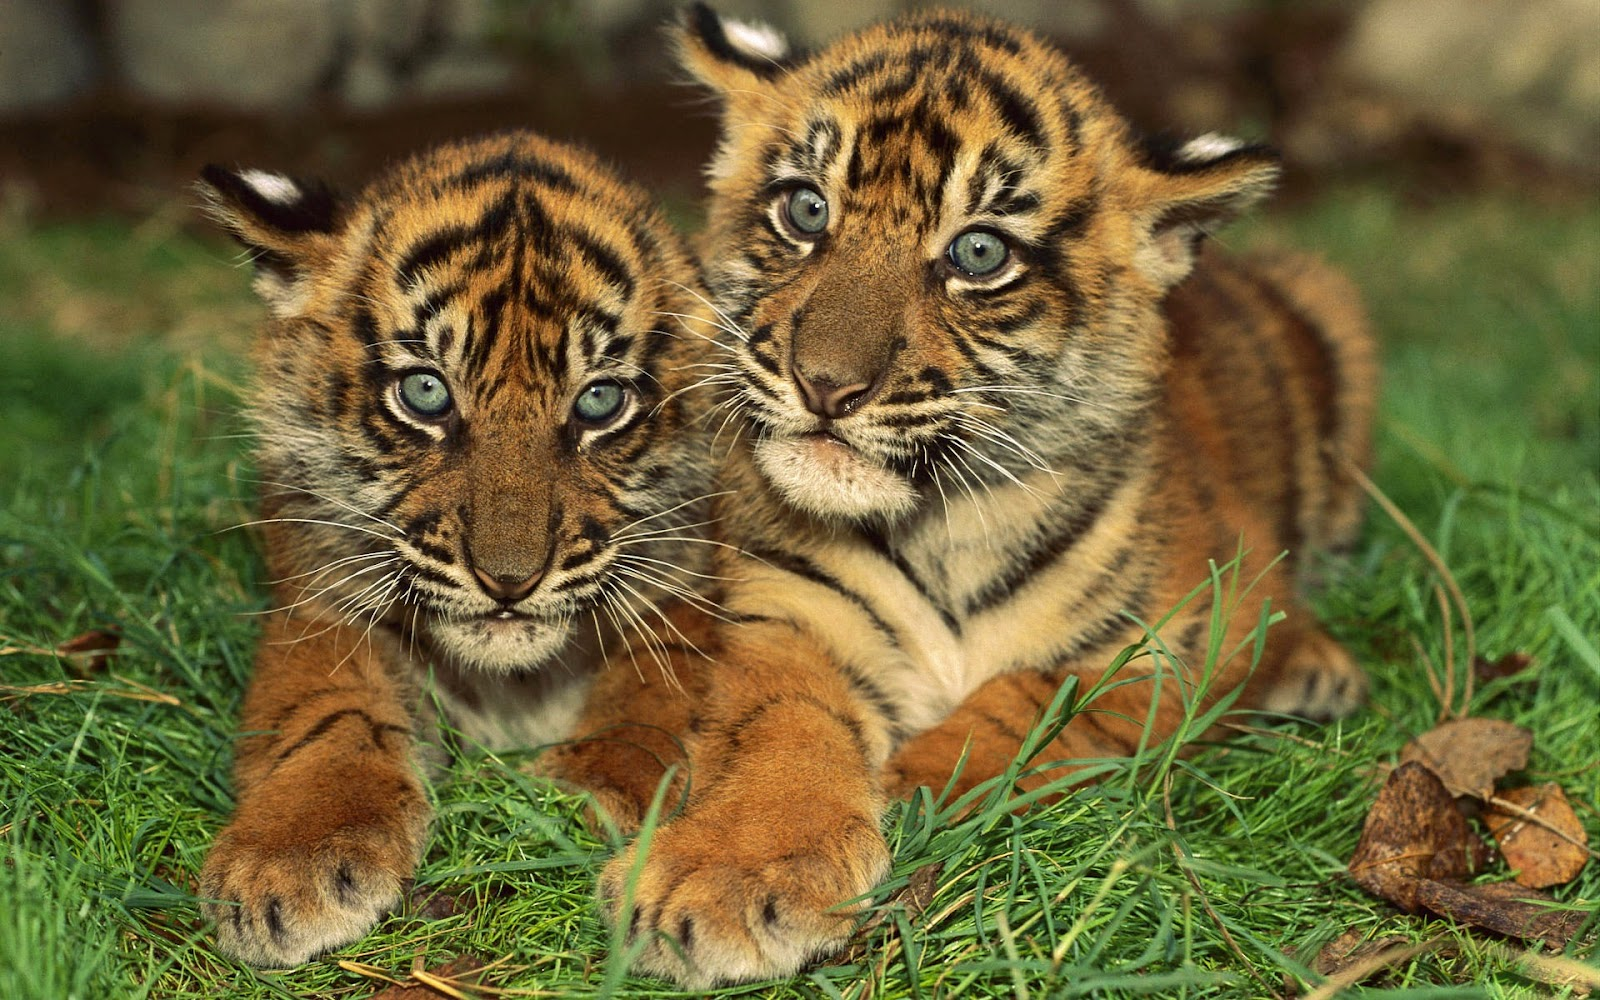 Three Siberian tiger cubs on a log